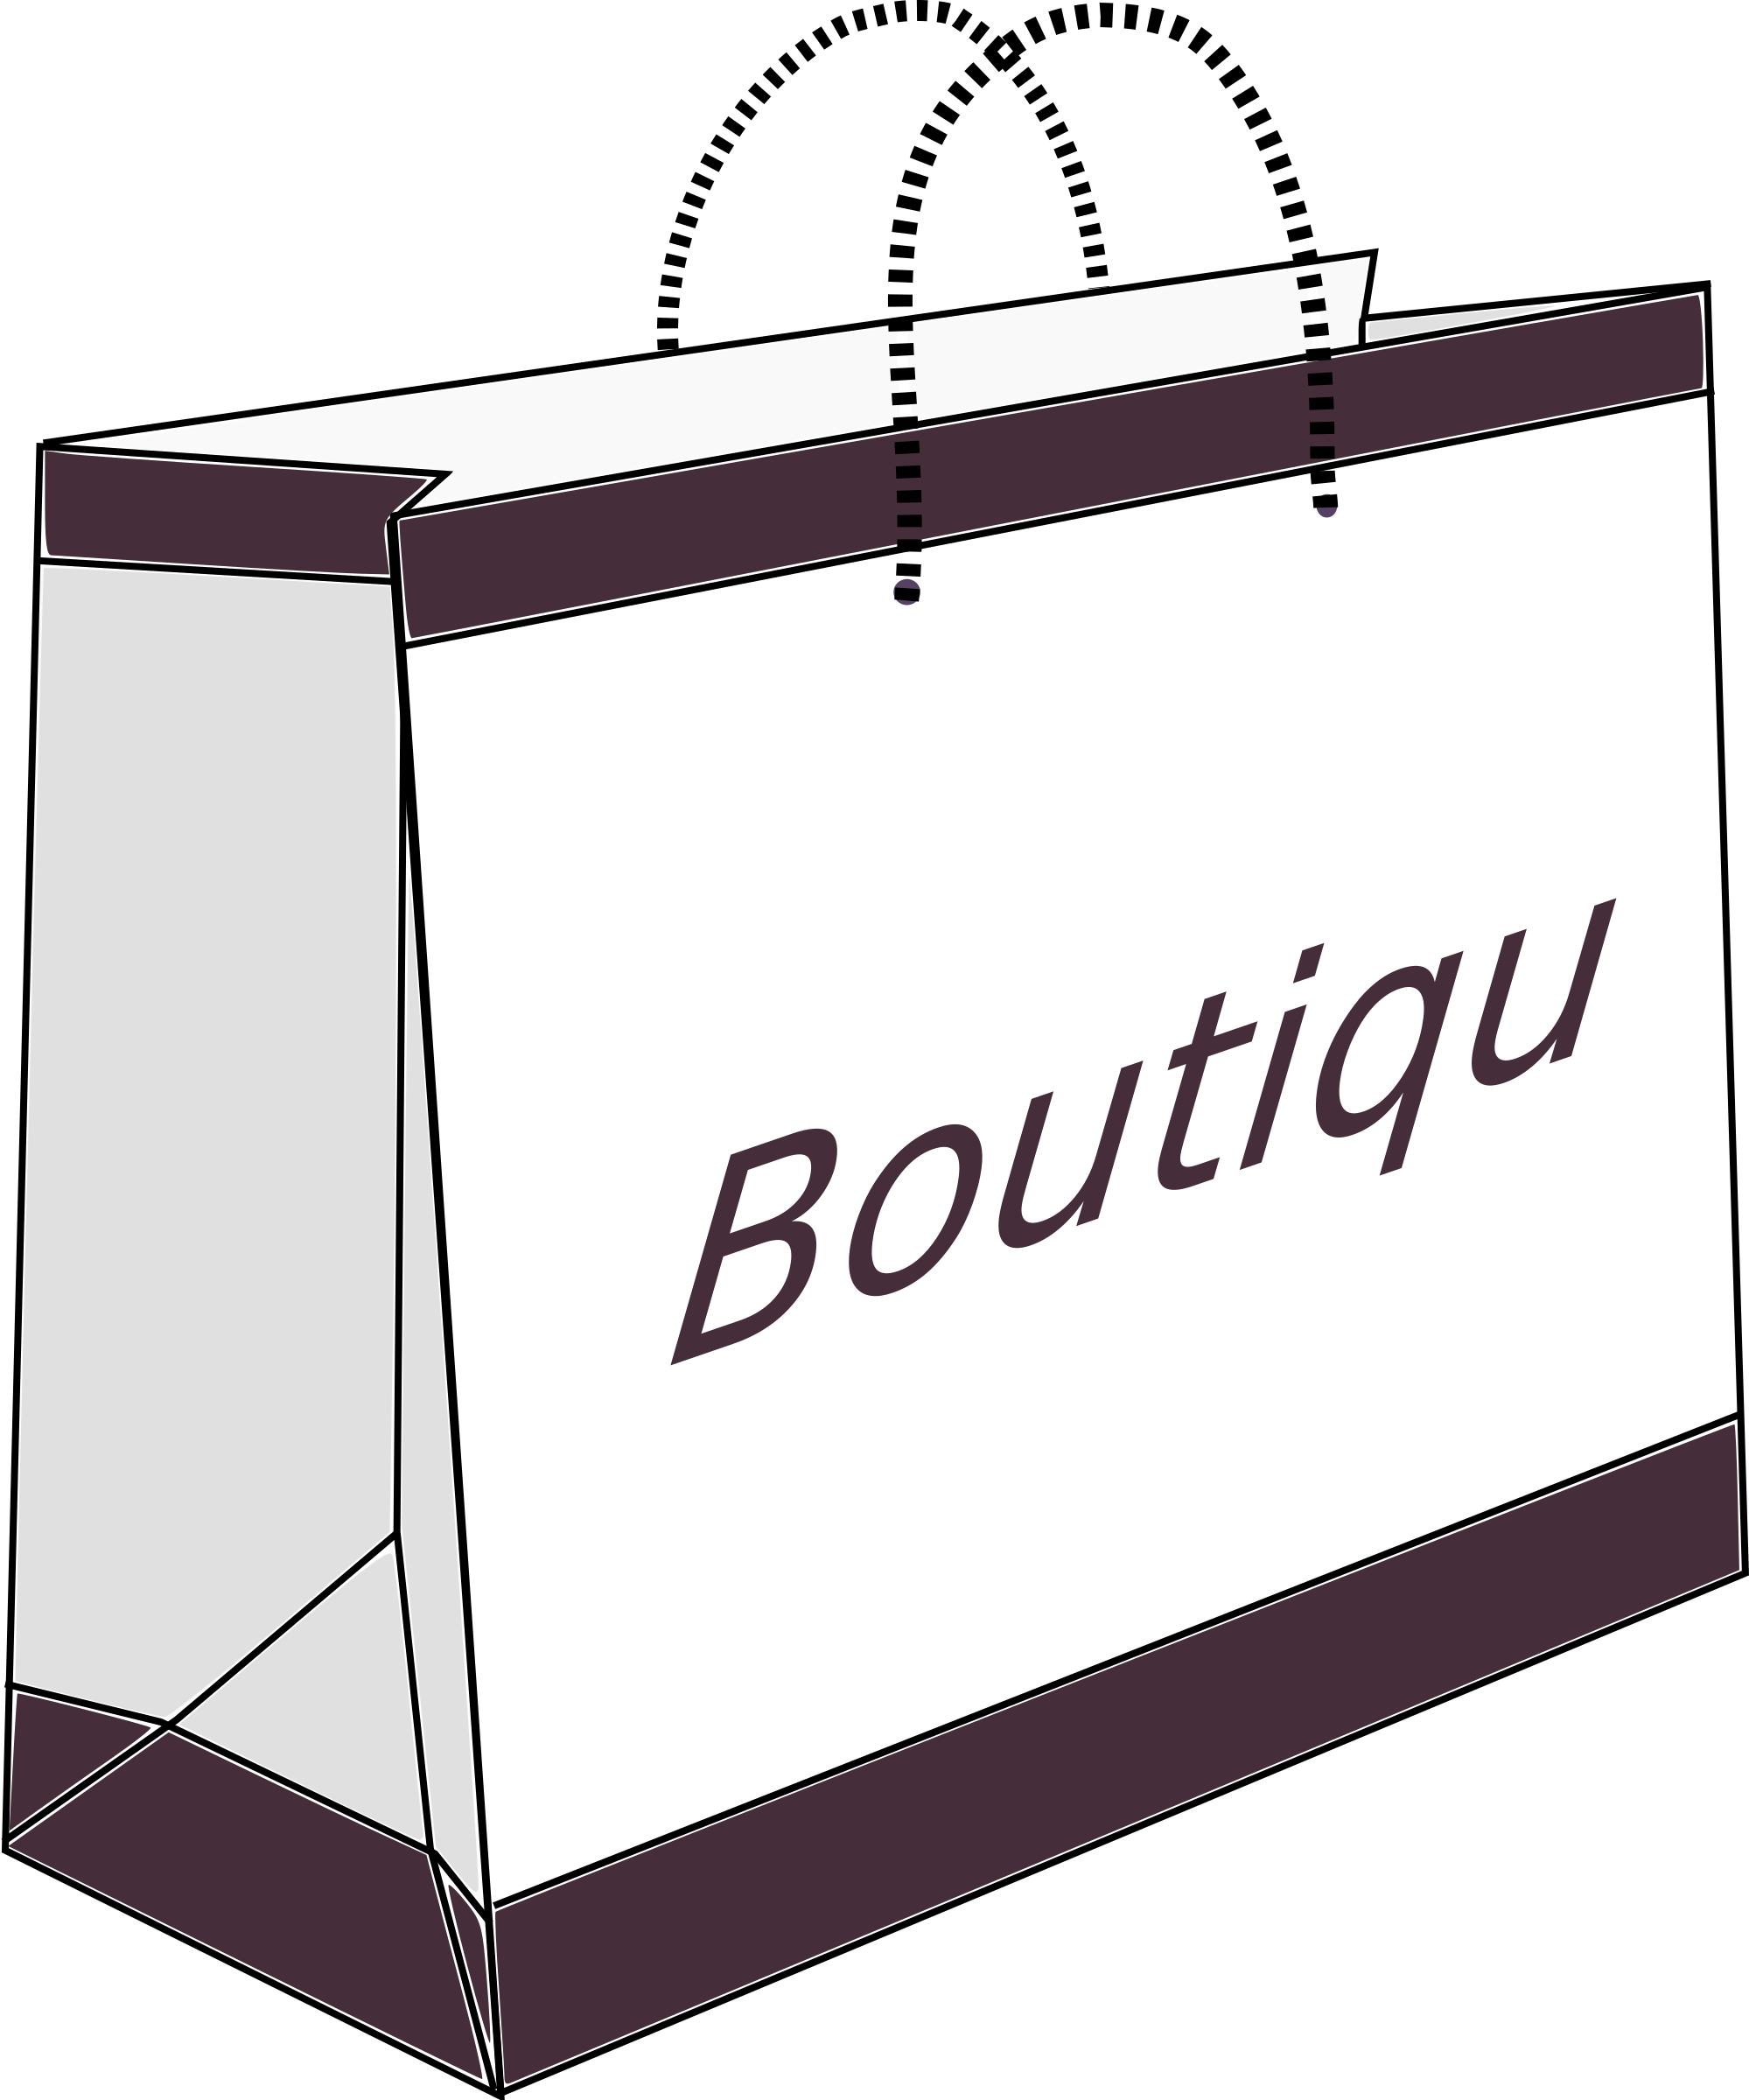 Boutique shopping bag big. Luggage clipart outline